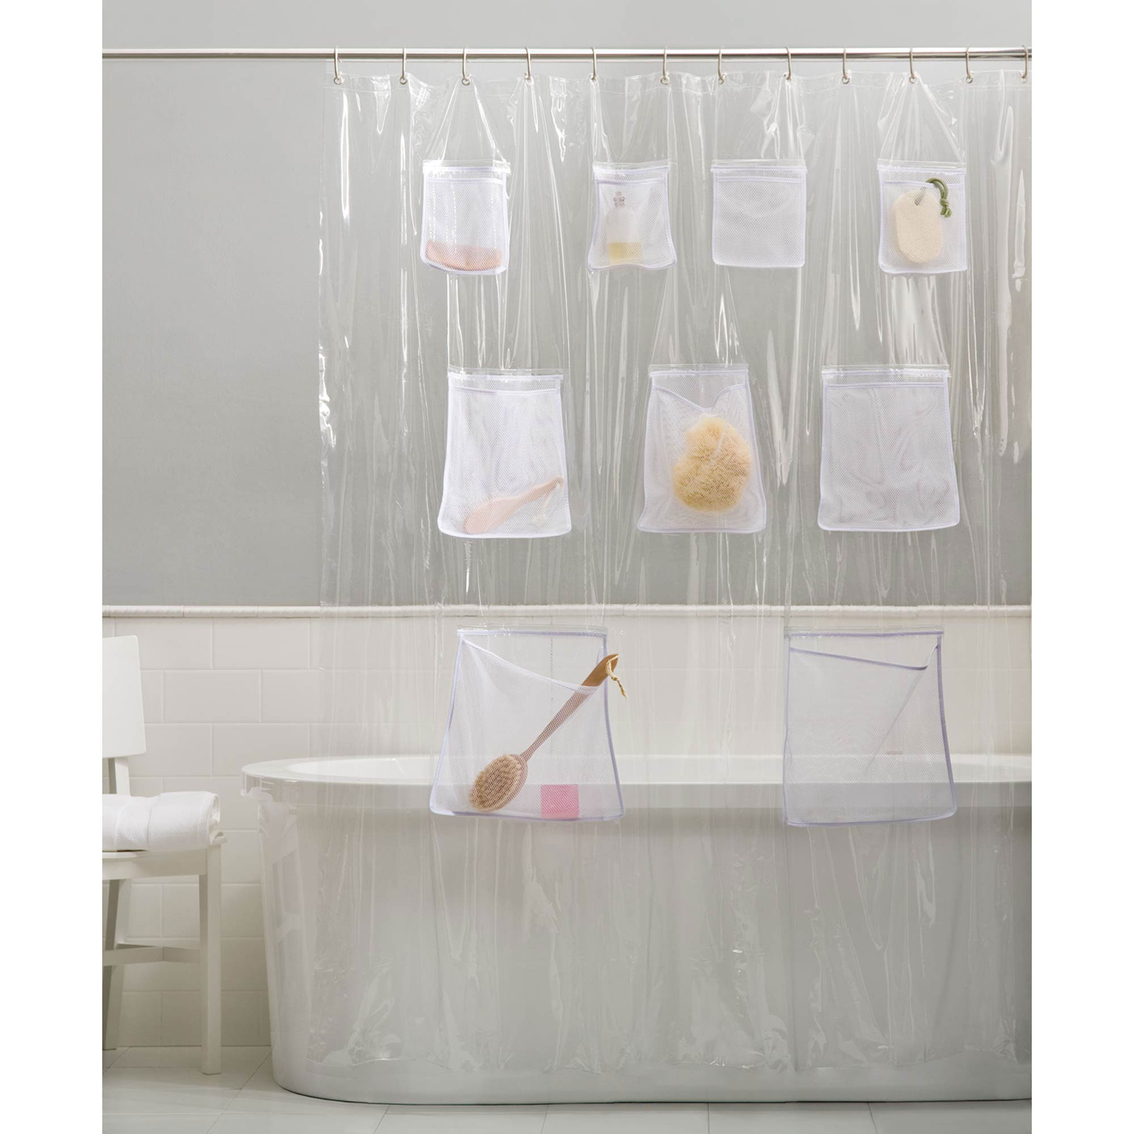 Maytex Mesh Pockets Ii Peva Shower Curtain